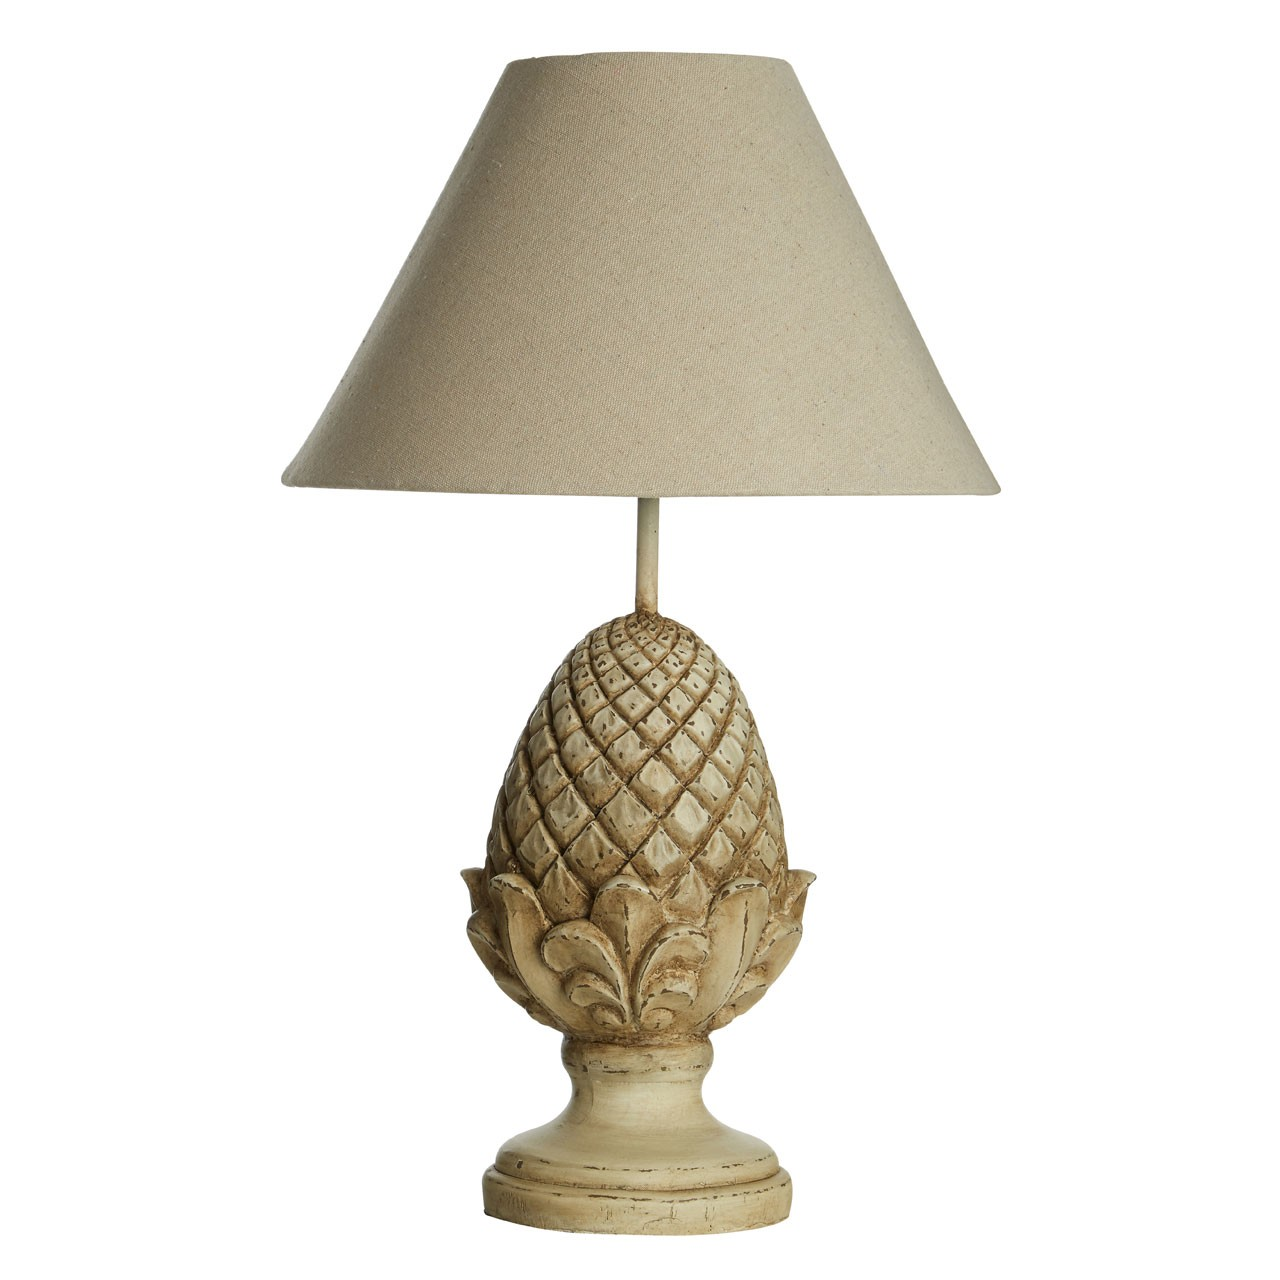 Prime Furnishing Acorn Table Lamp with Resin Base - Natural